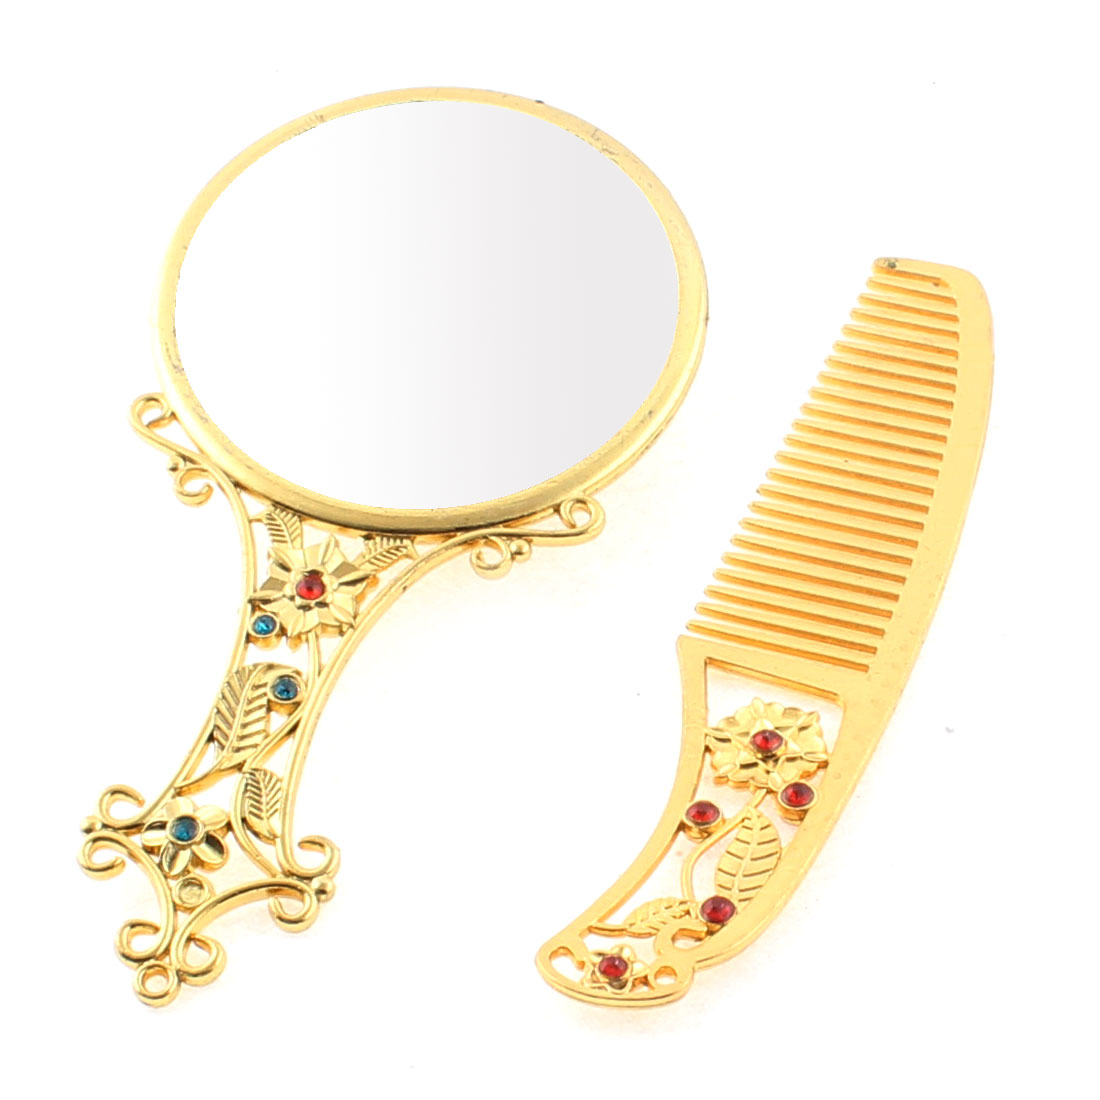 Flower Pattern Handbag Compact Cosmetic Makeup Mirror Comb Gift Set Gold Tone